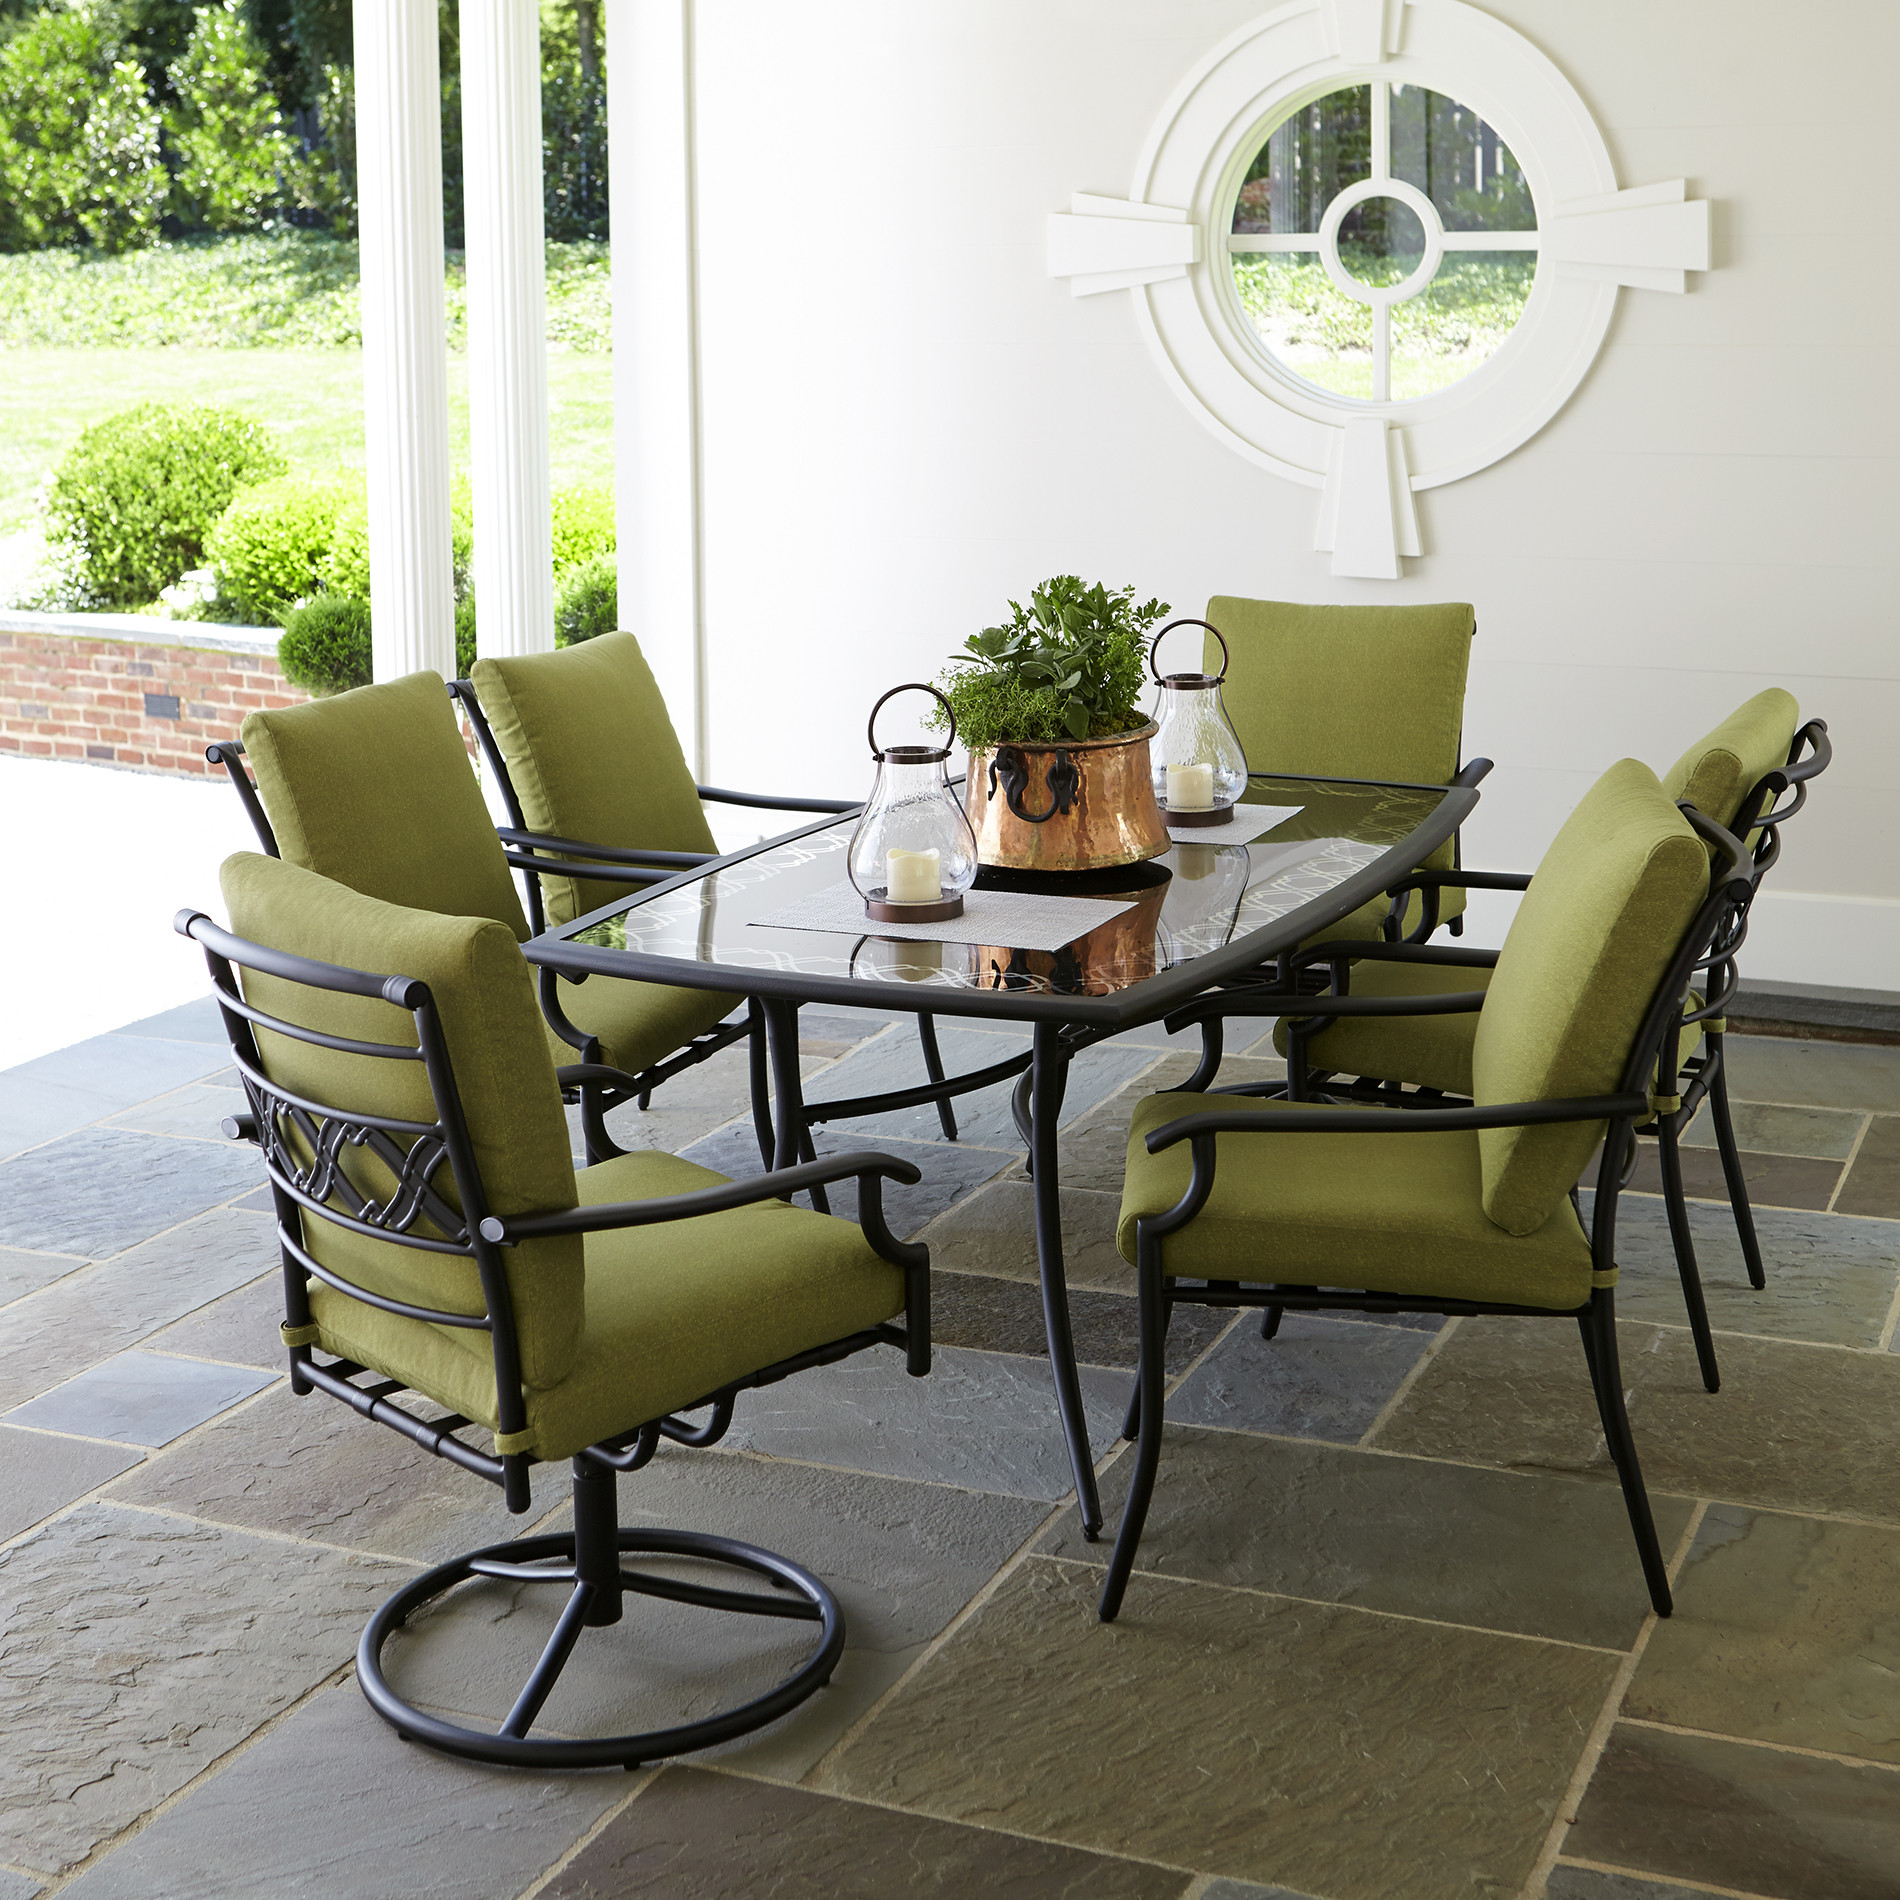 Best ideas about Outdoor Patio Dining Sets . Save or Pin Garden Oasis Rockford 7pc Dining Set Green Now.